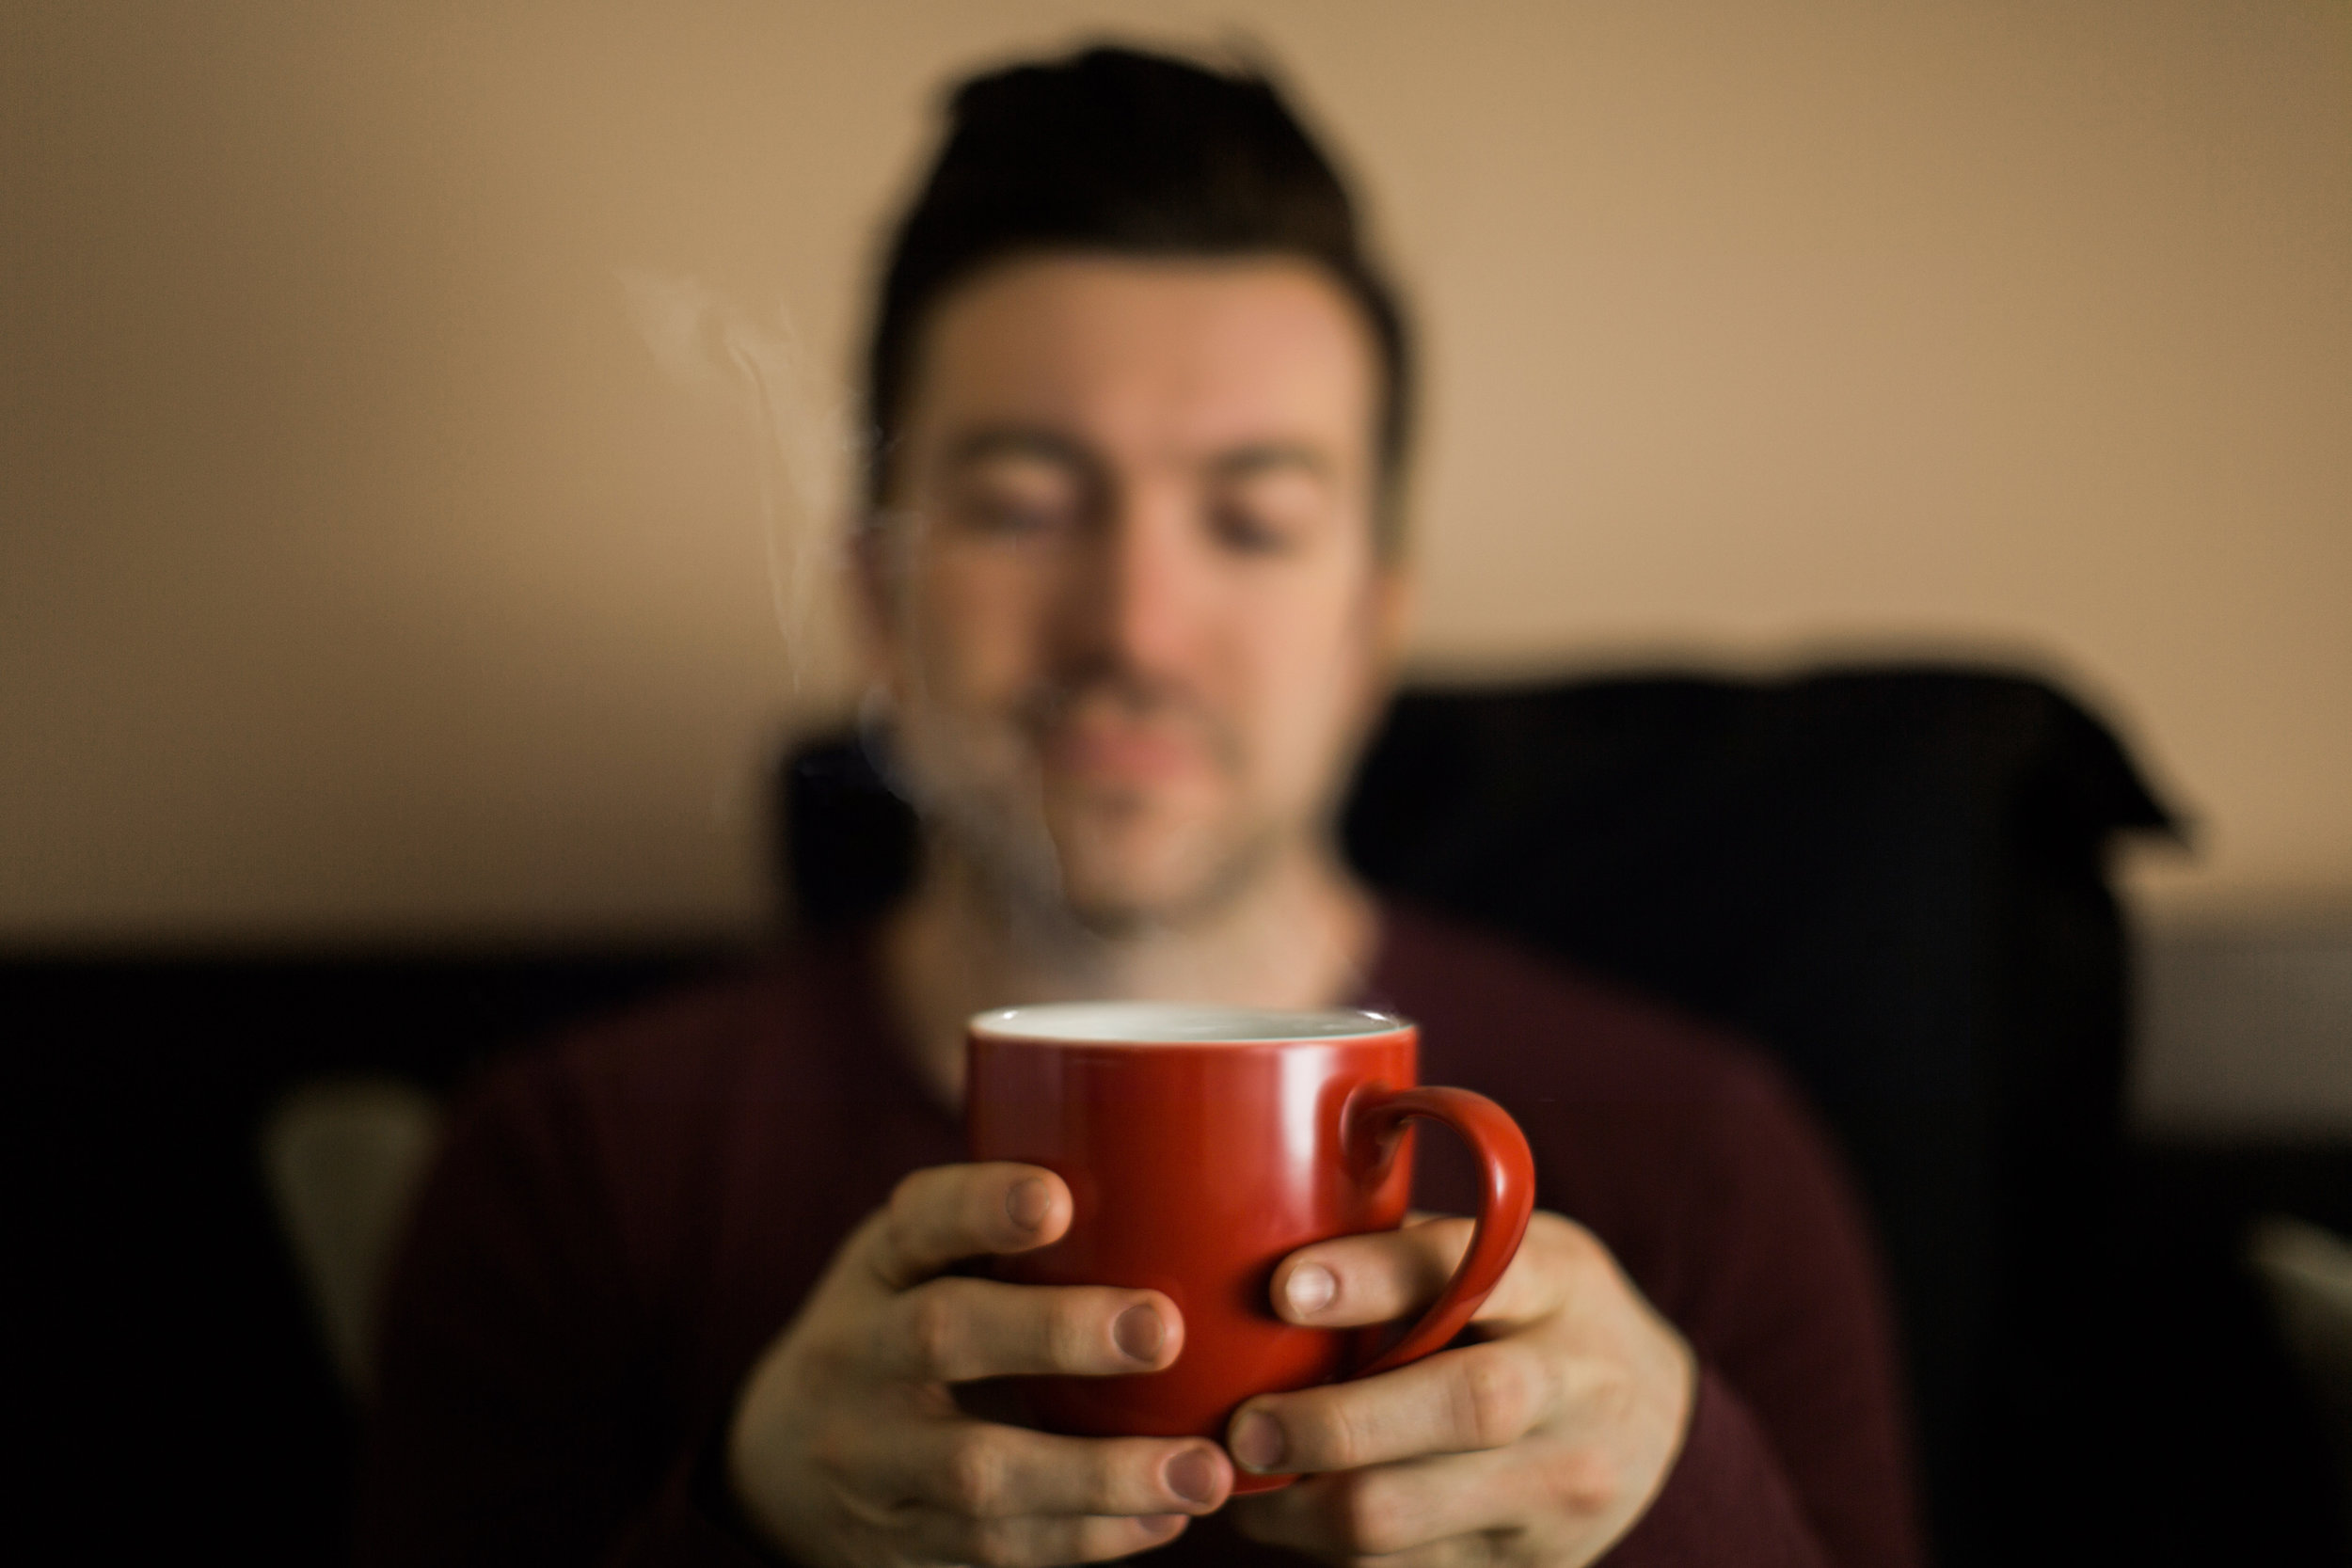 With three hours to burn, coffee becomes a meditative ritual.